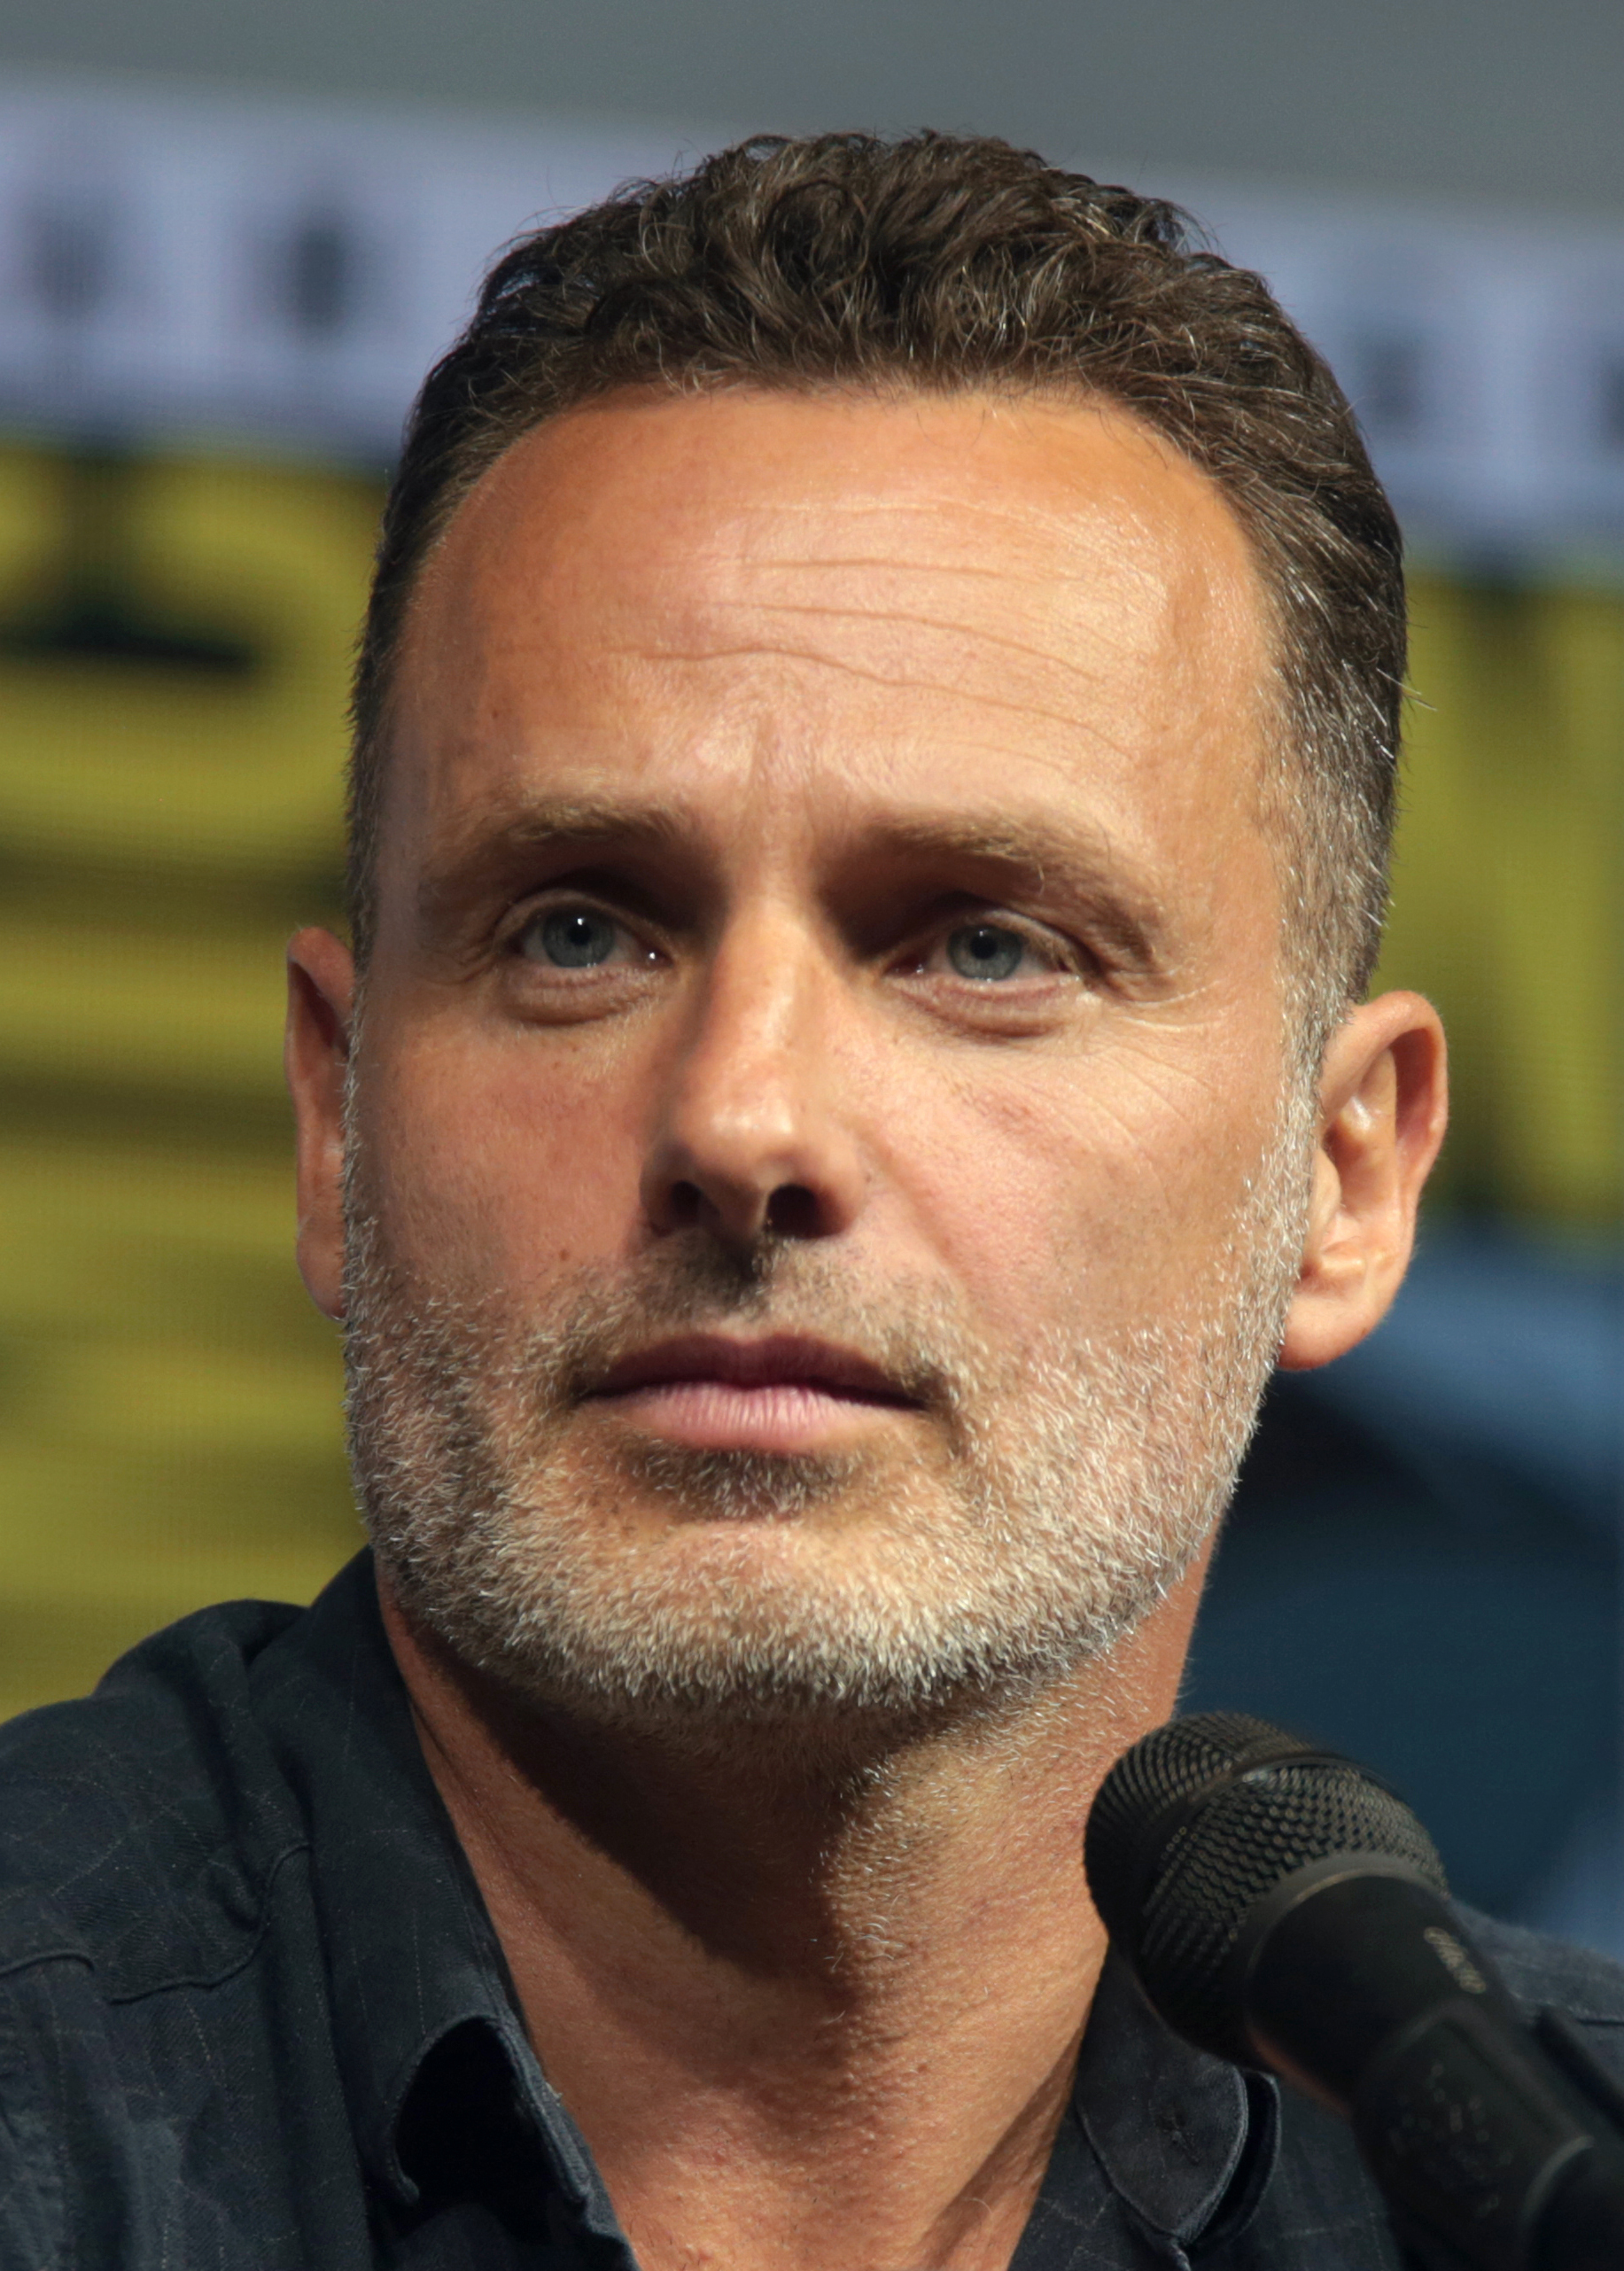 The 47-year old son of father (?) and mother(?) Andrew Lincoln in 2020 photo. Andrew Lincoln earned a 1 million dollar salary - leaving the net worth at 7 million in 2020